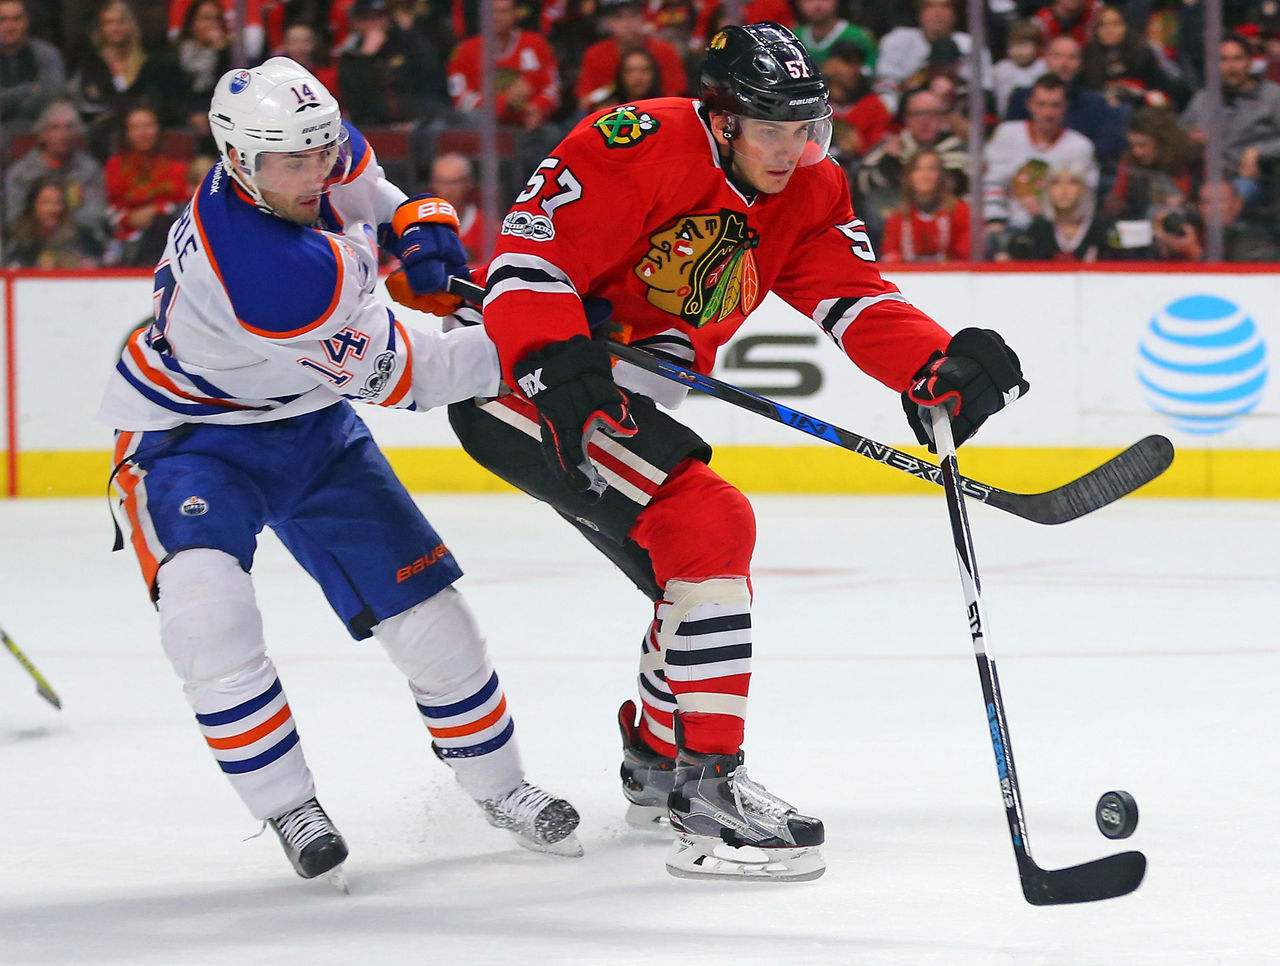 Cropped 2017 02 19t020047z 1080440093 nocid rtrmadp 3 nhl edmonton oilers at chicago blackhawks